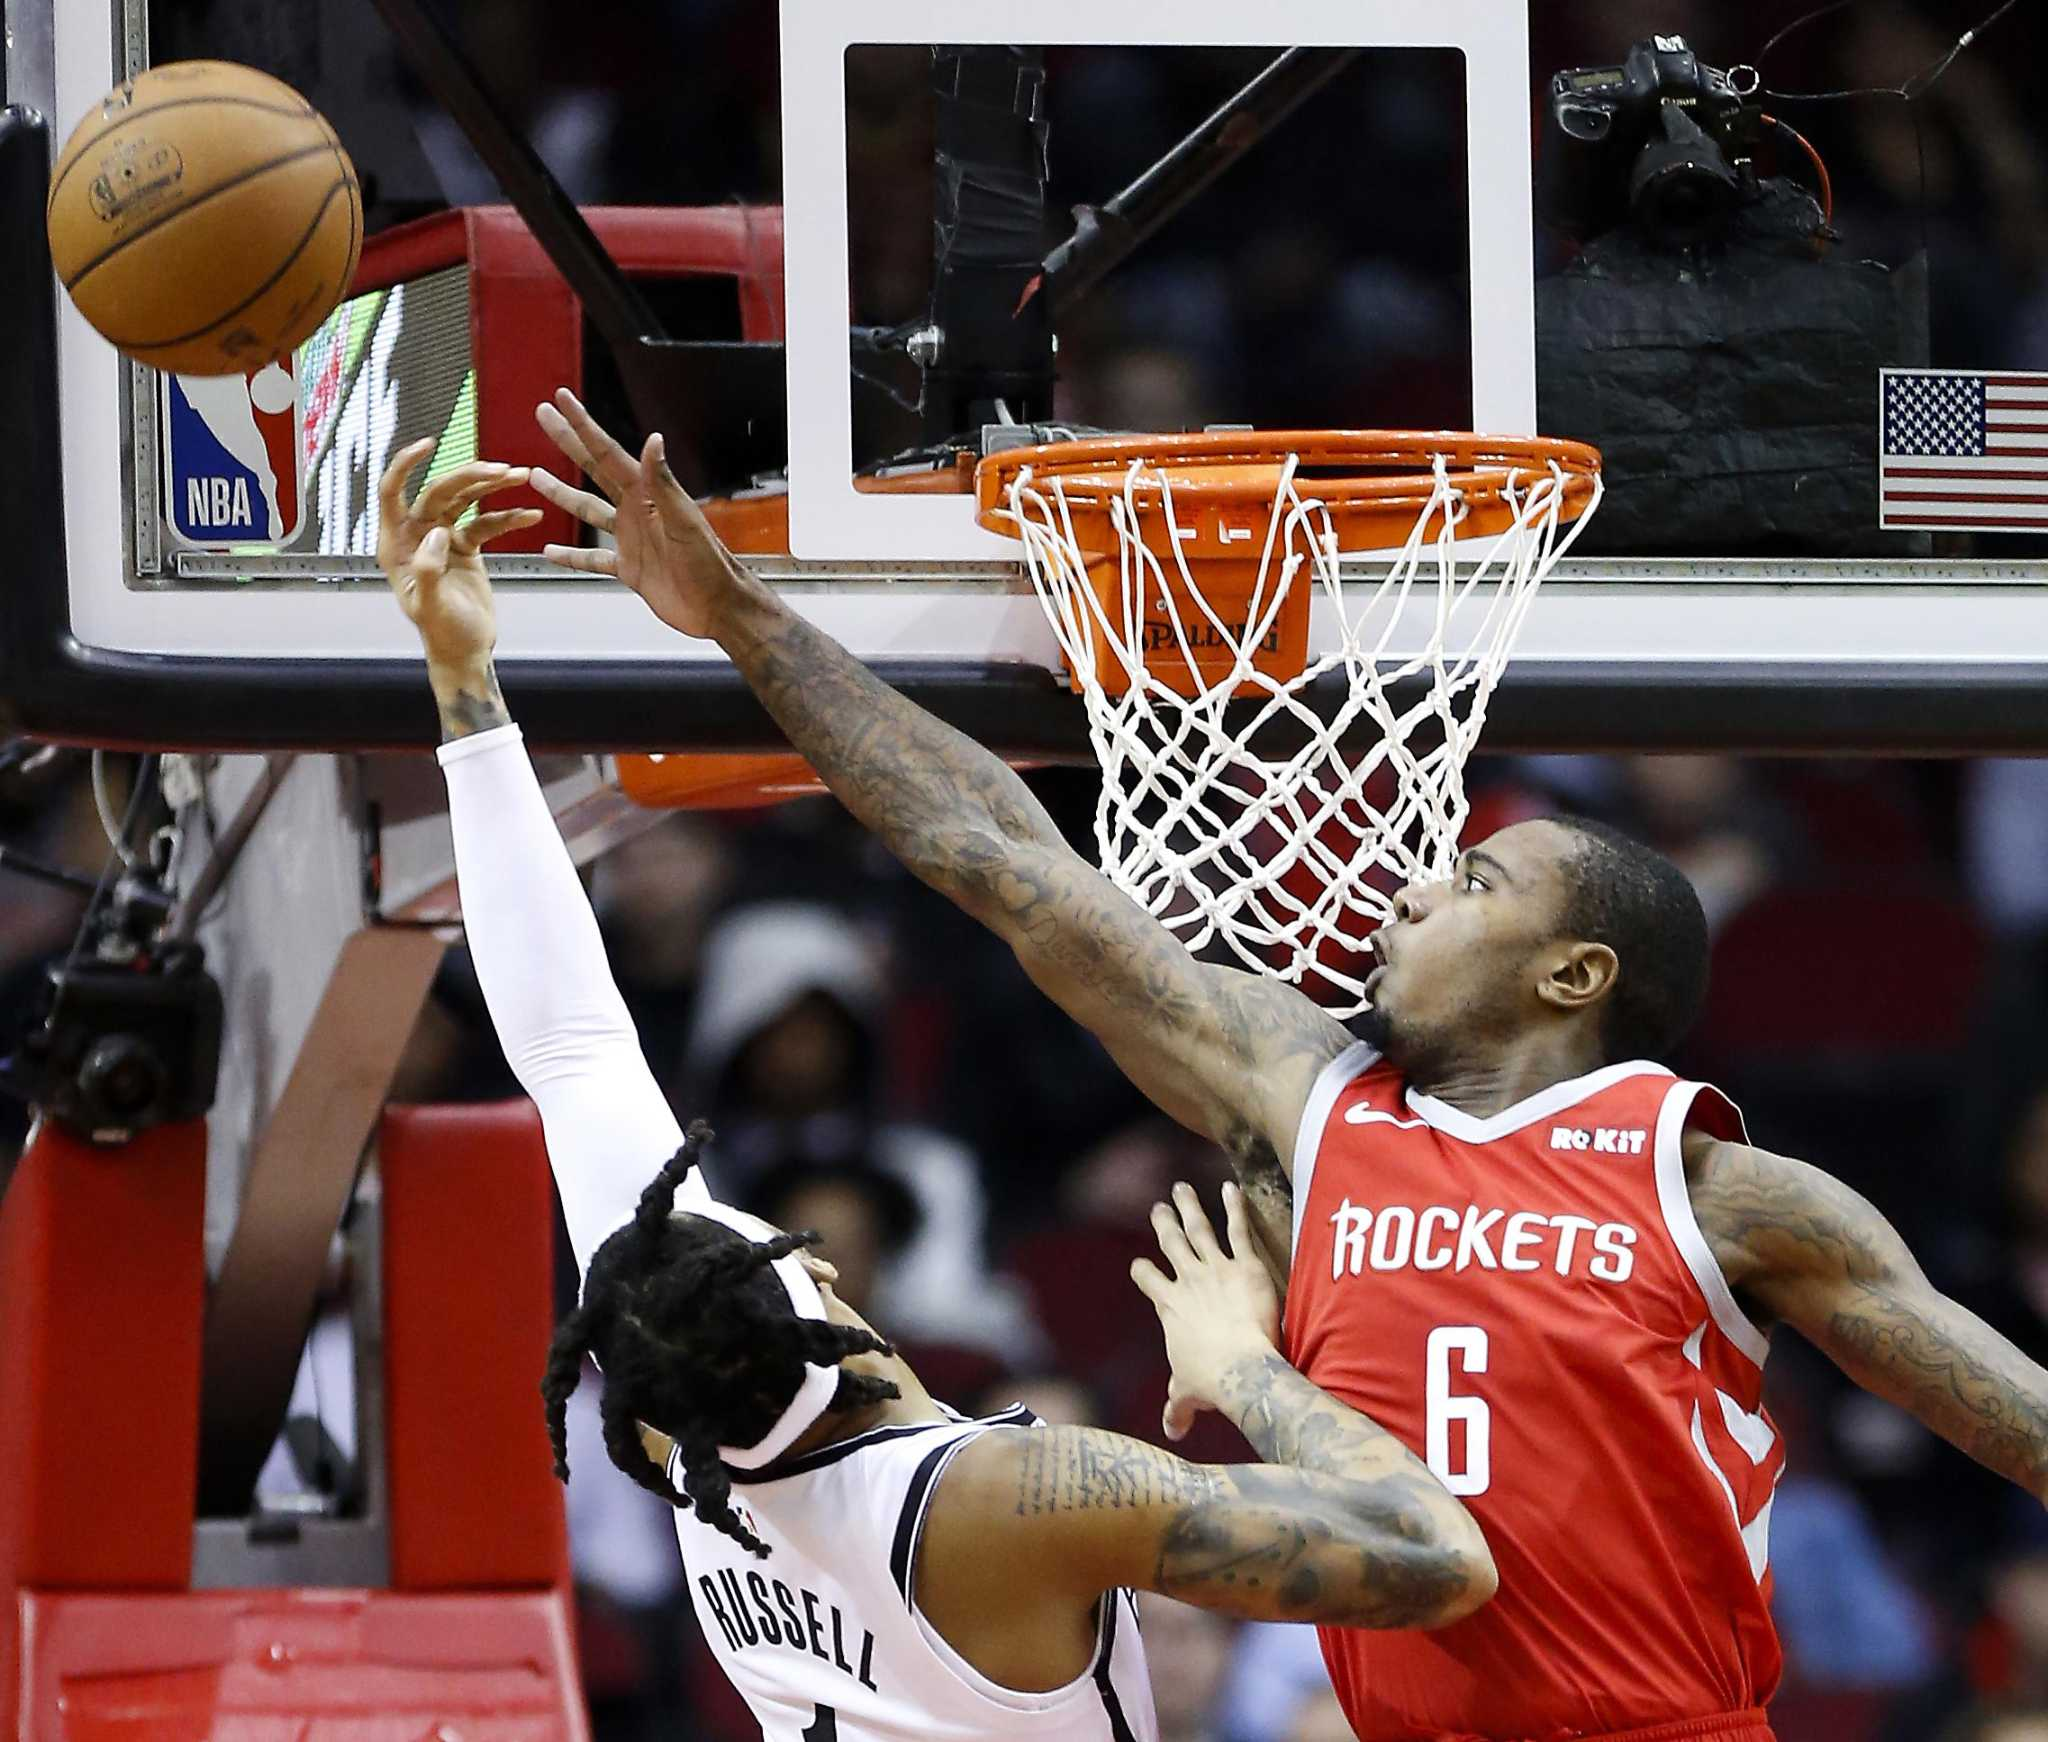 James Harden's 58 points go for naught in OT loss to Nets